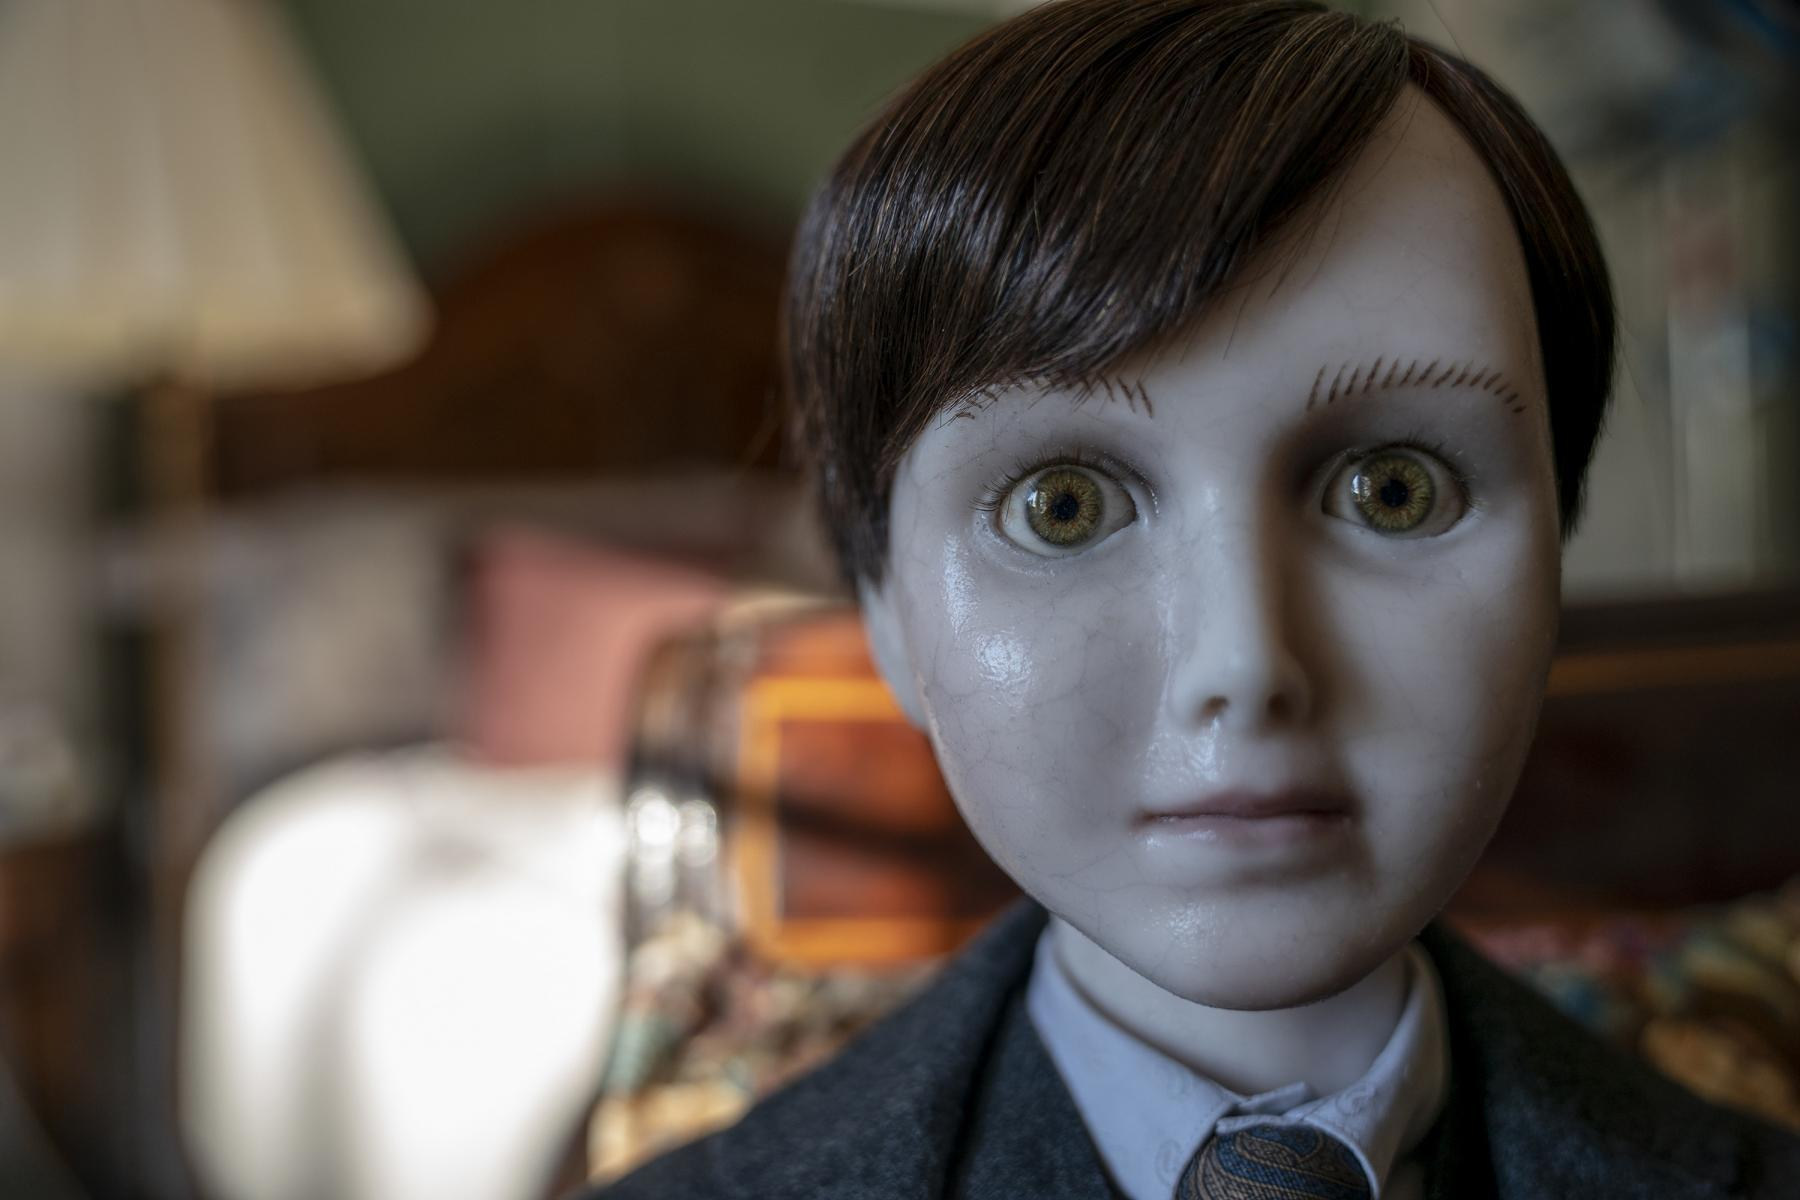 Image gallery for Brahms: The Boy II - FilmAffinity